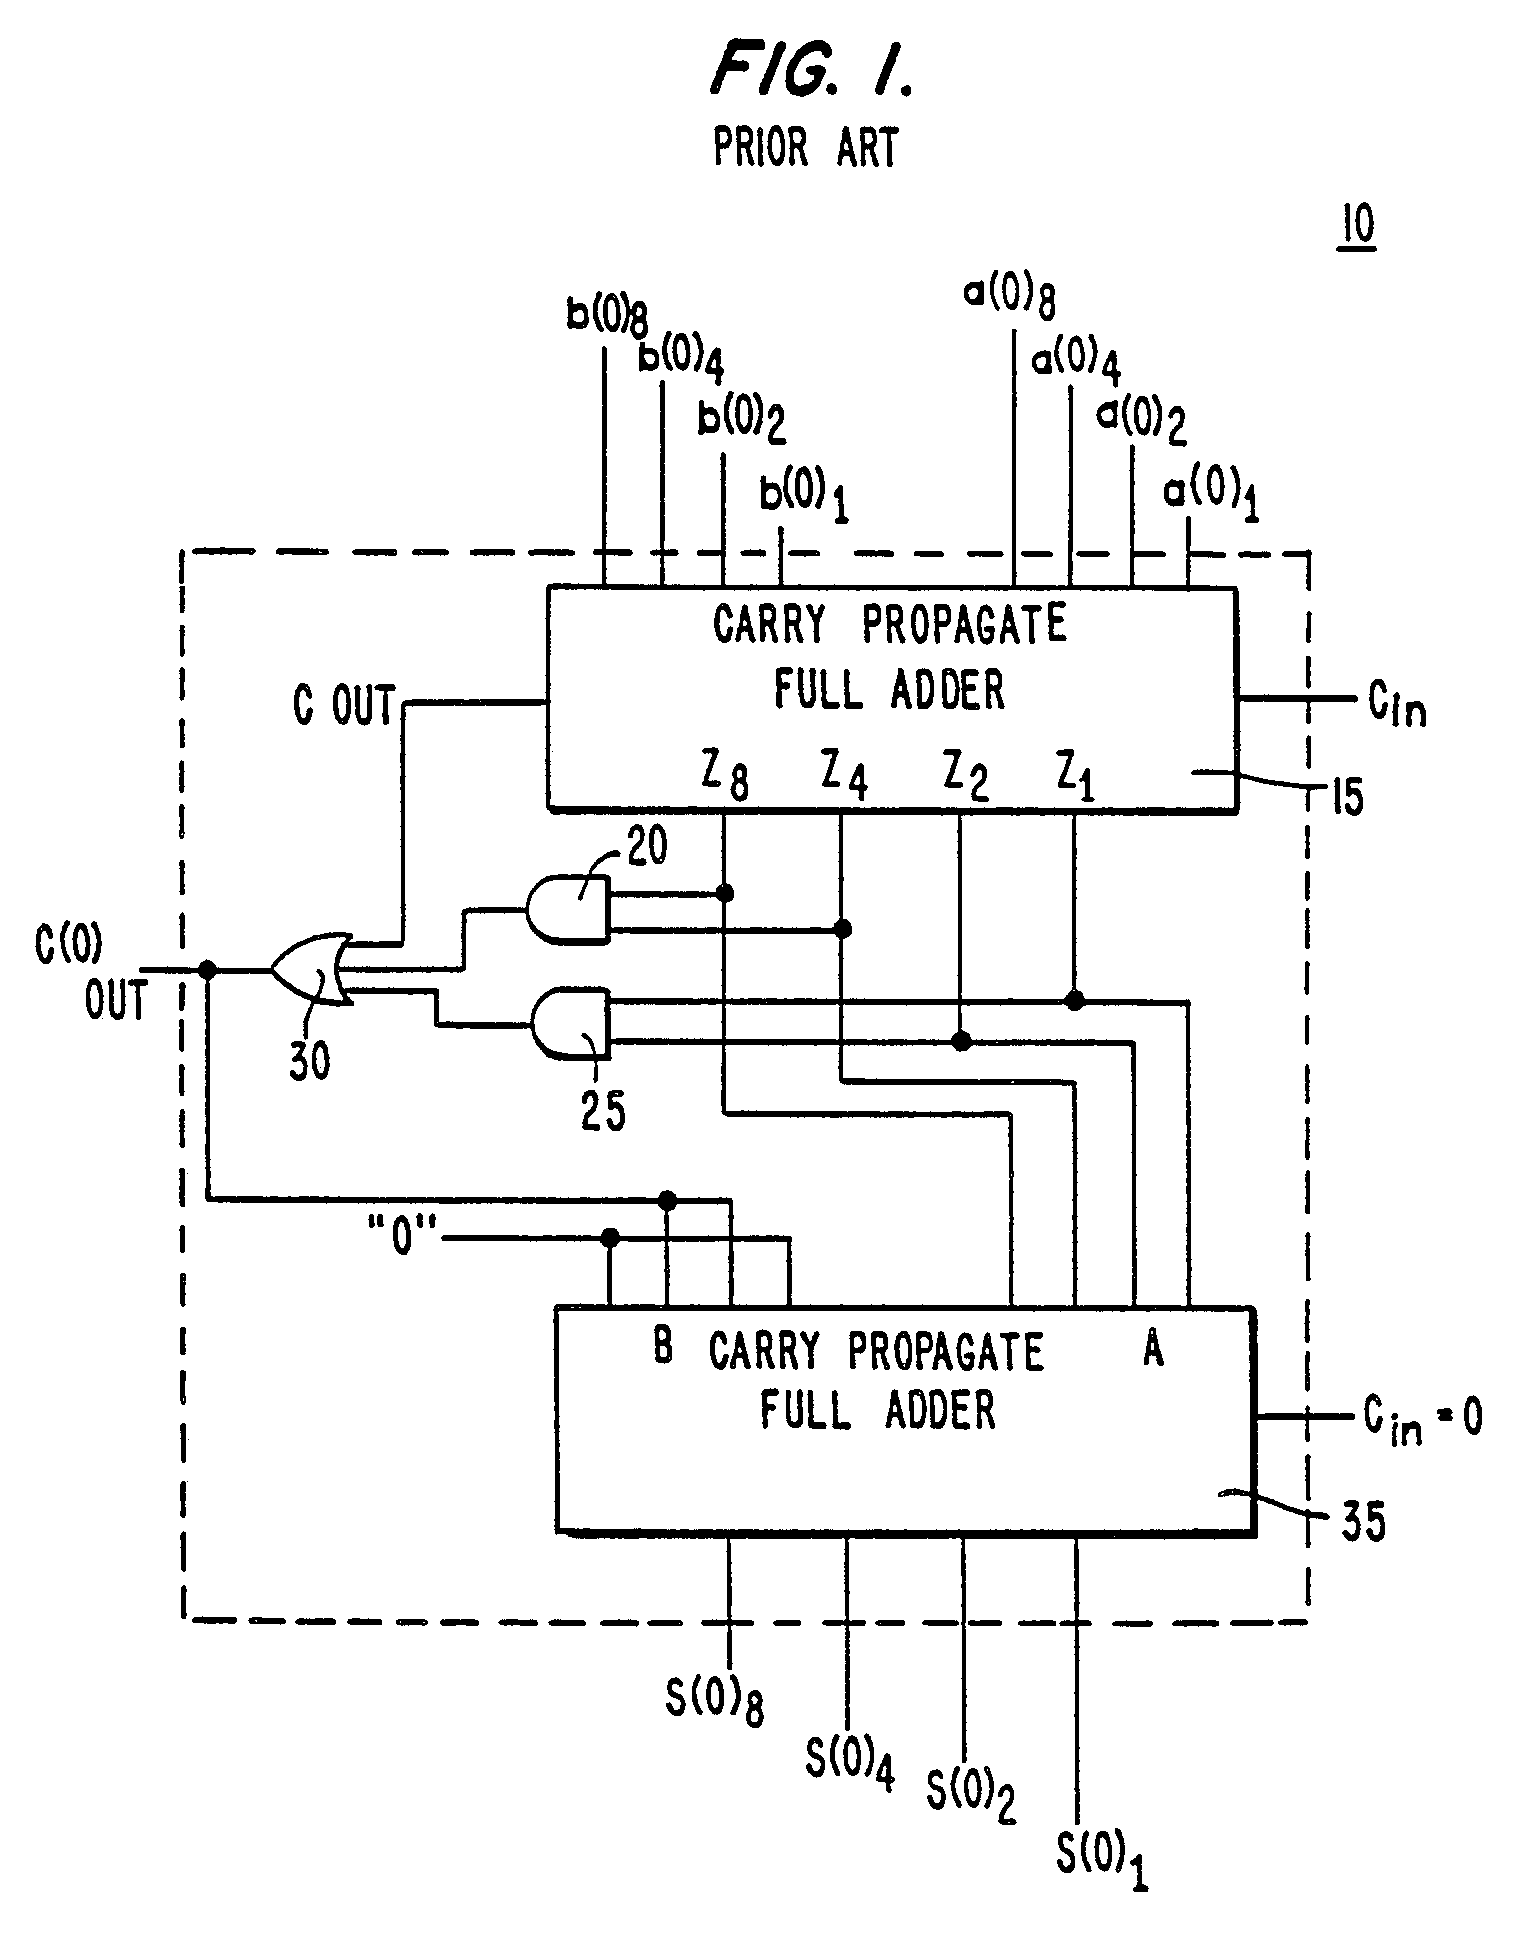 Logic diagram of bcd adder blueraritanfo patent epa bcd adder circuit google patents wiring diagram pooptronica